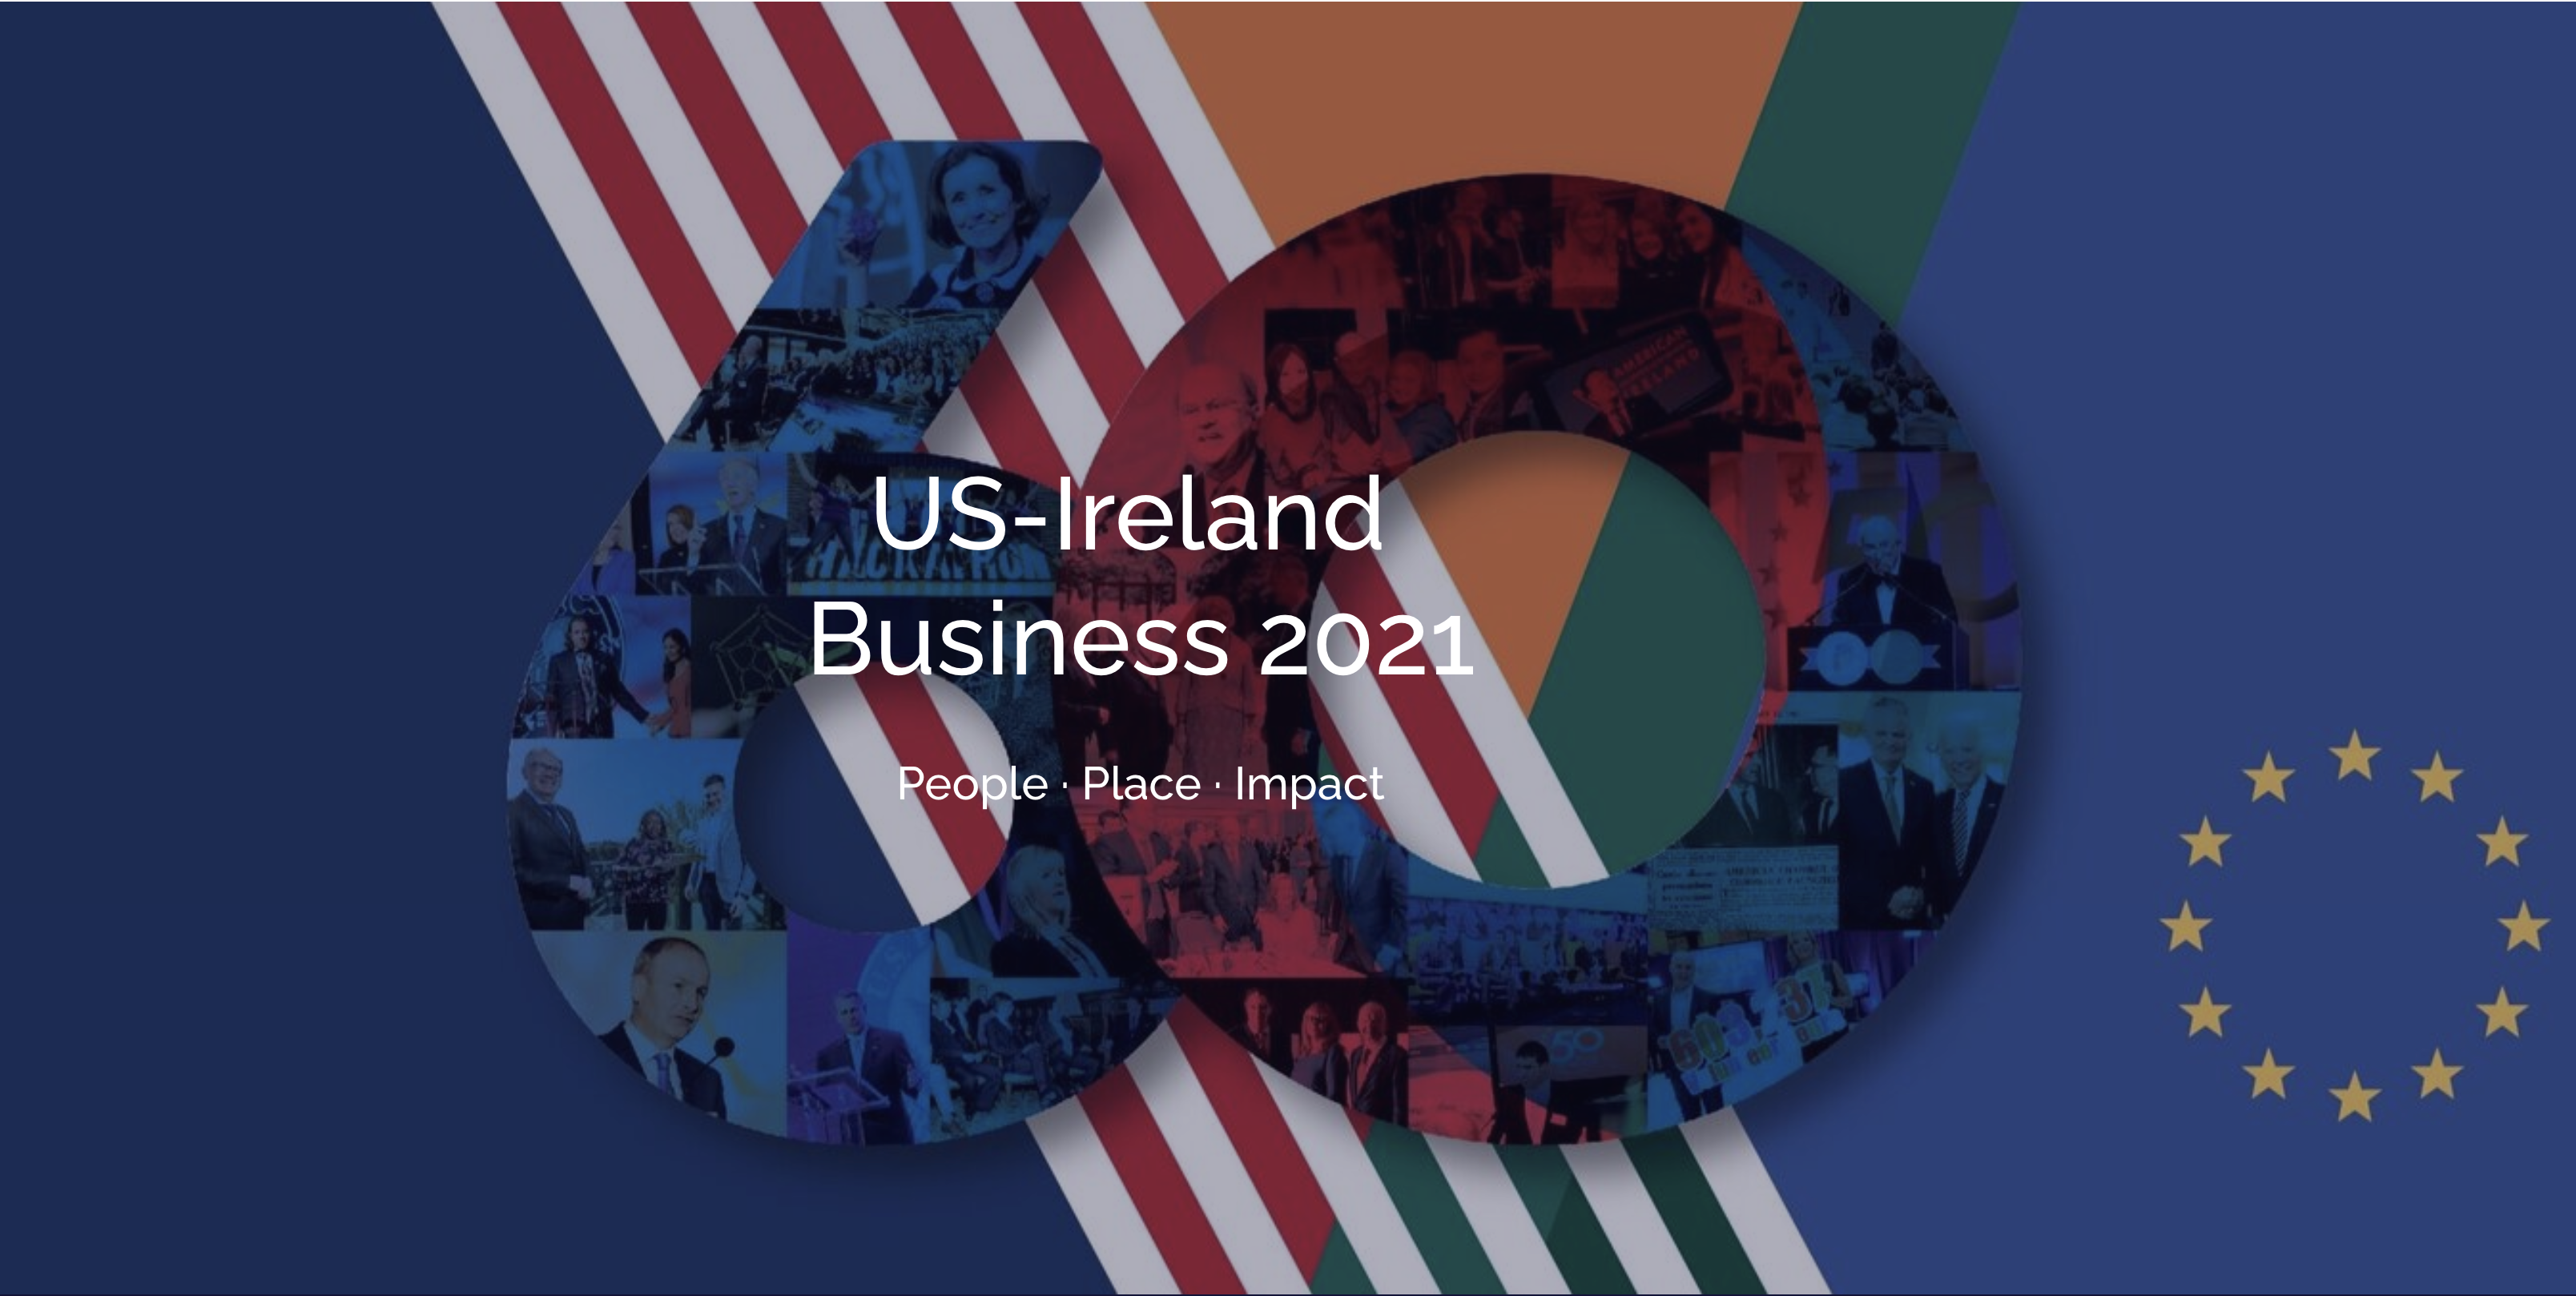 Virtual Launch of the American Chamber of Commerce Ireland, US-Ireland Business Report 2021